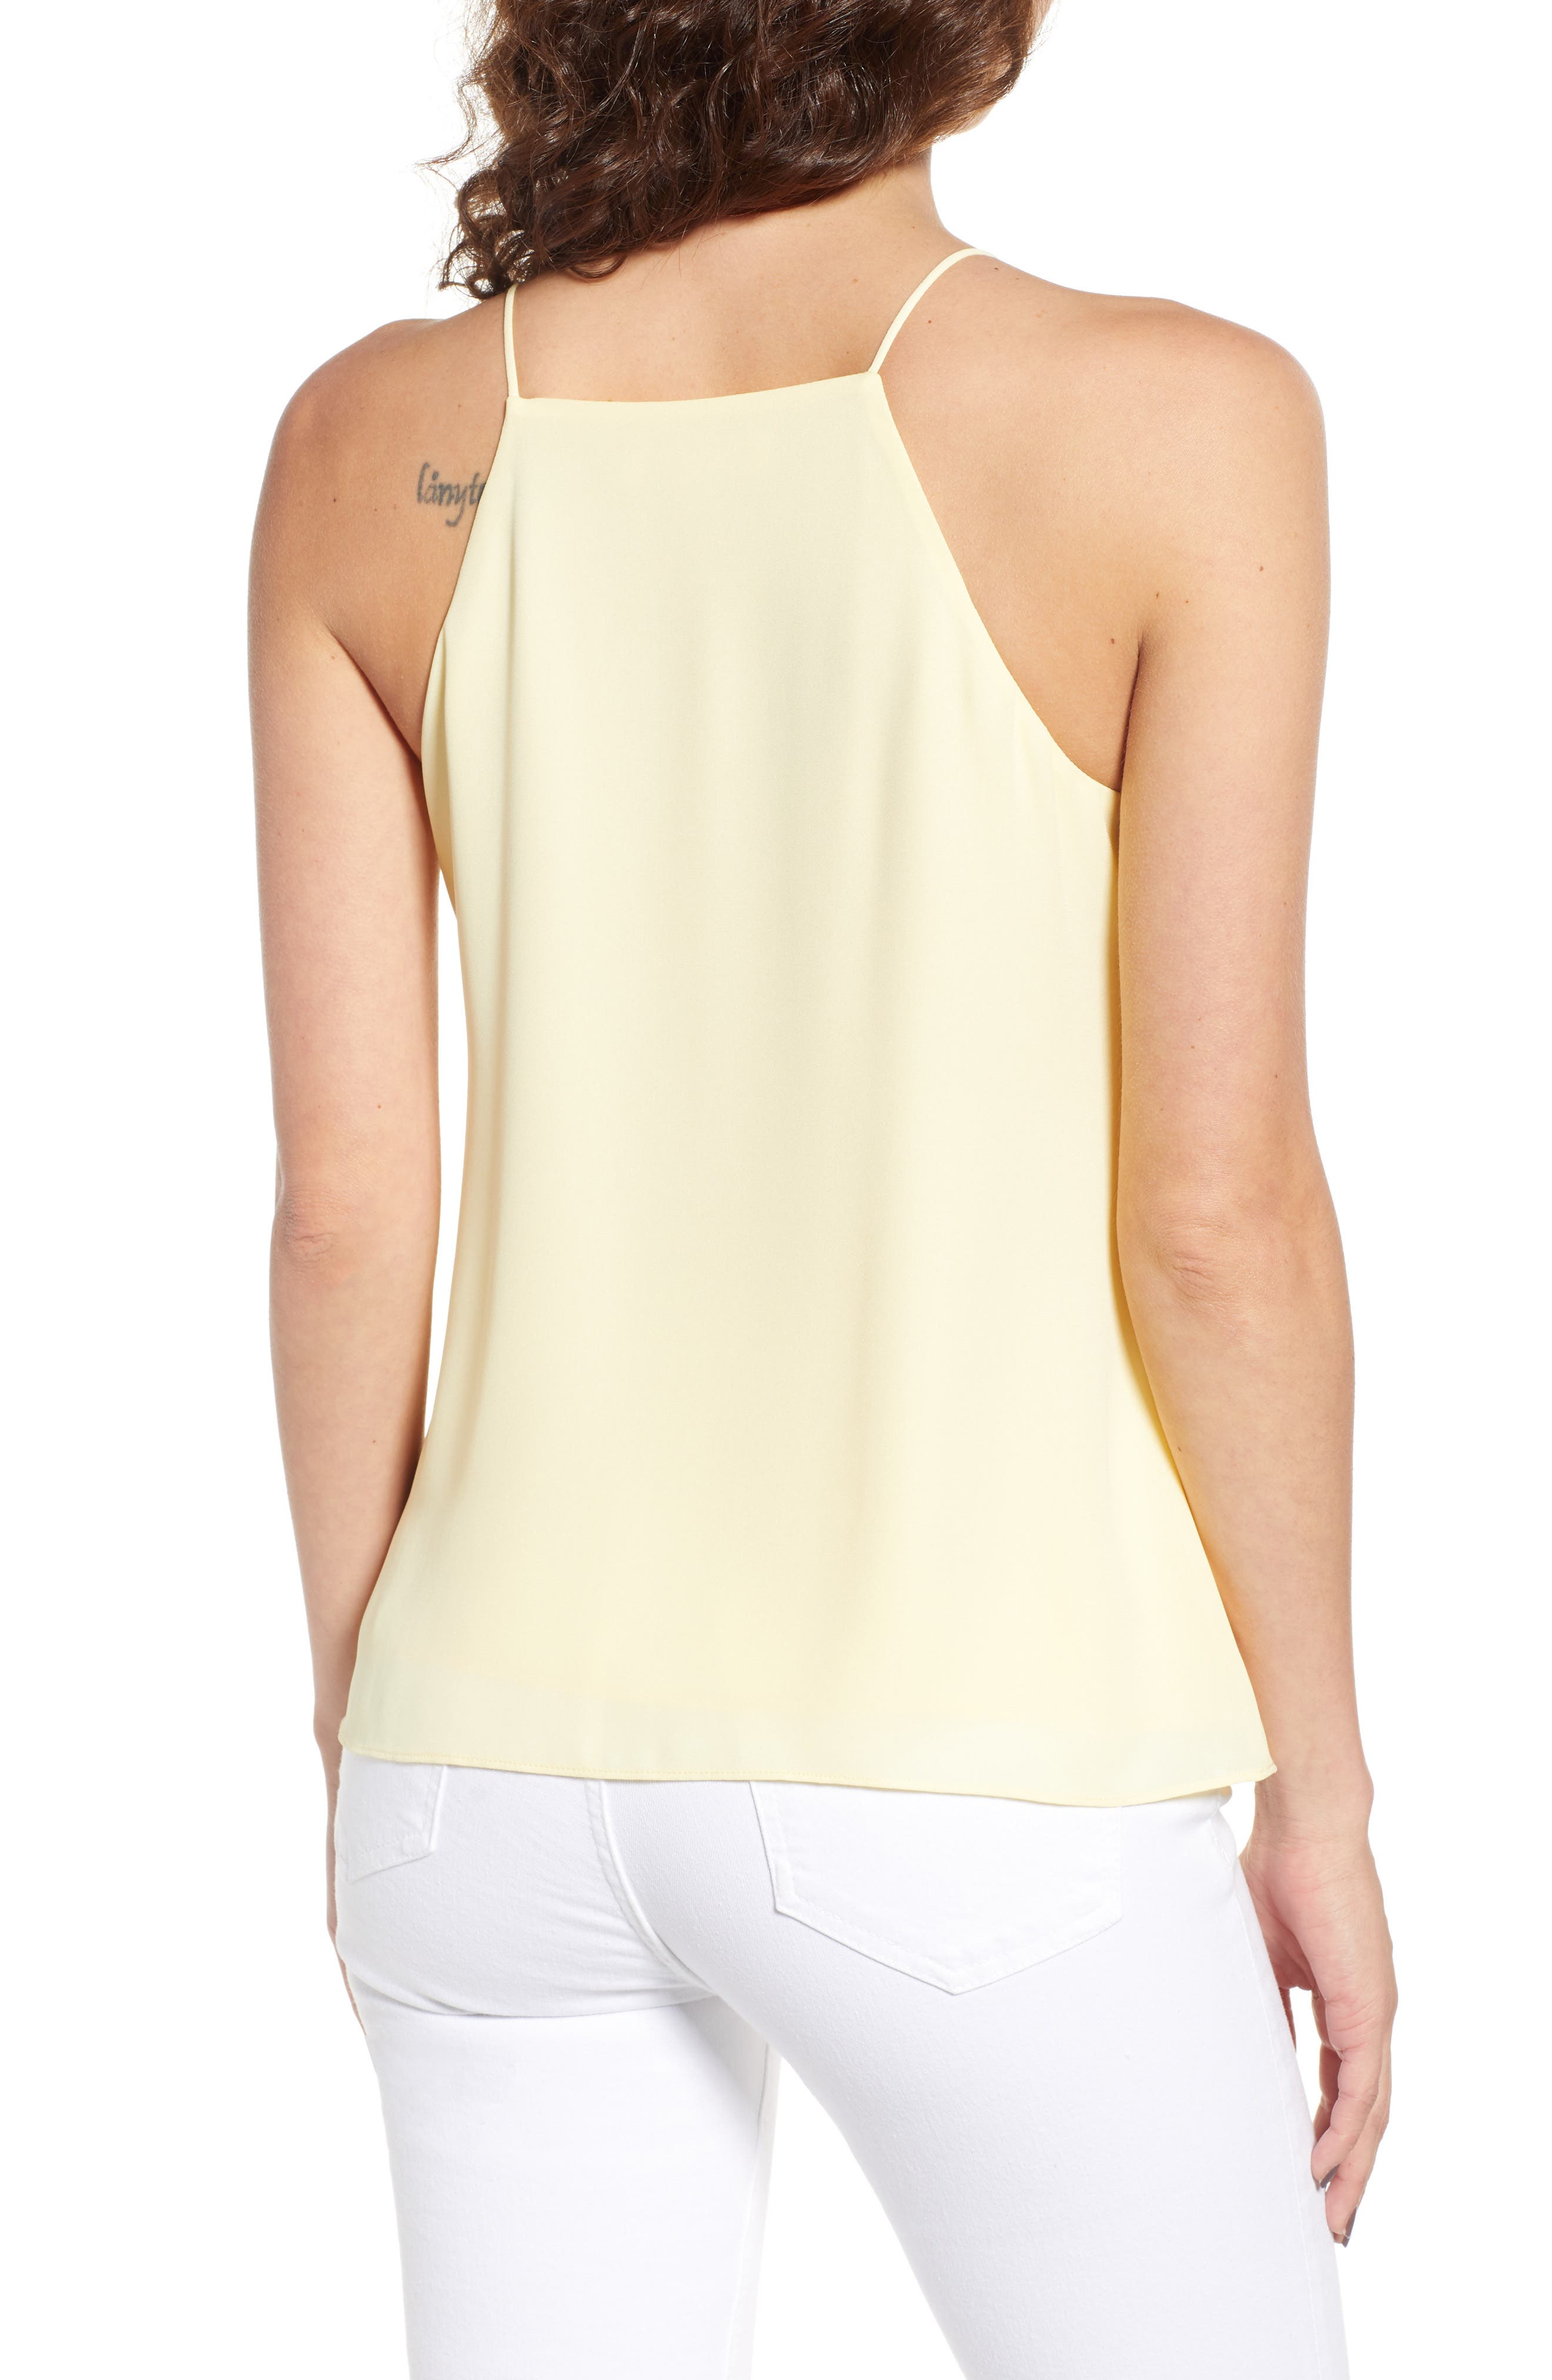 Posie Strappy Camisole,                             Alternate thumbnail 2, color,                             Yellow Pastel